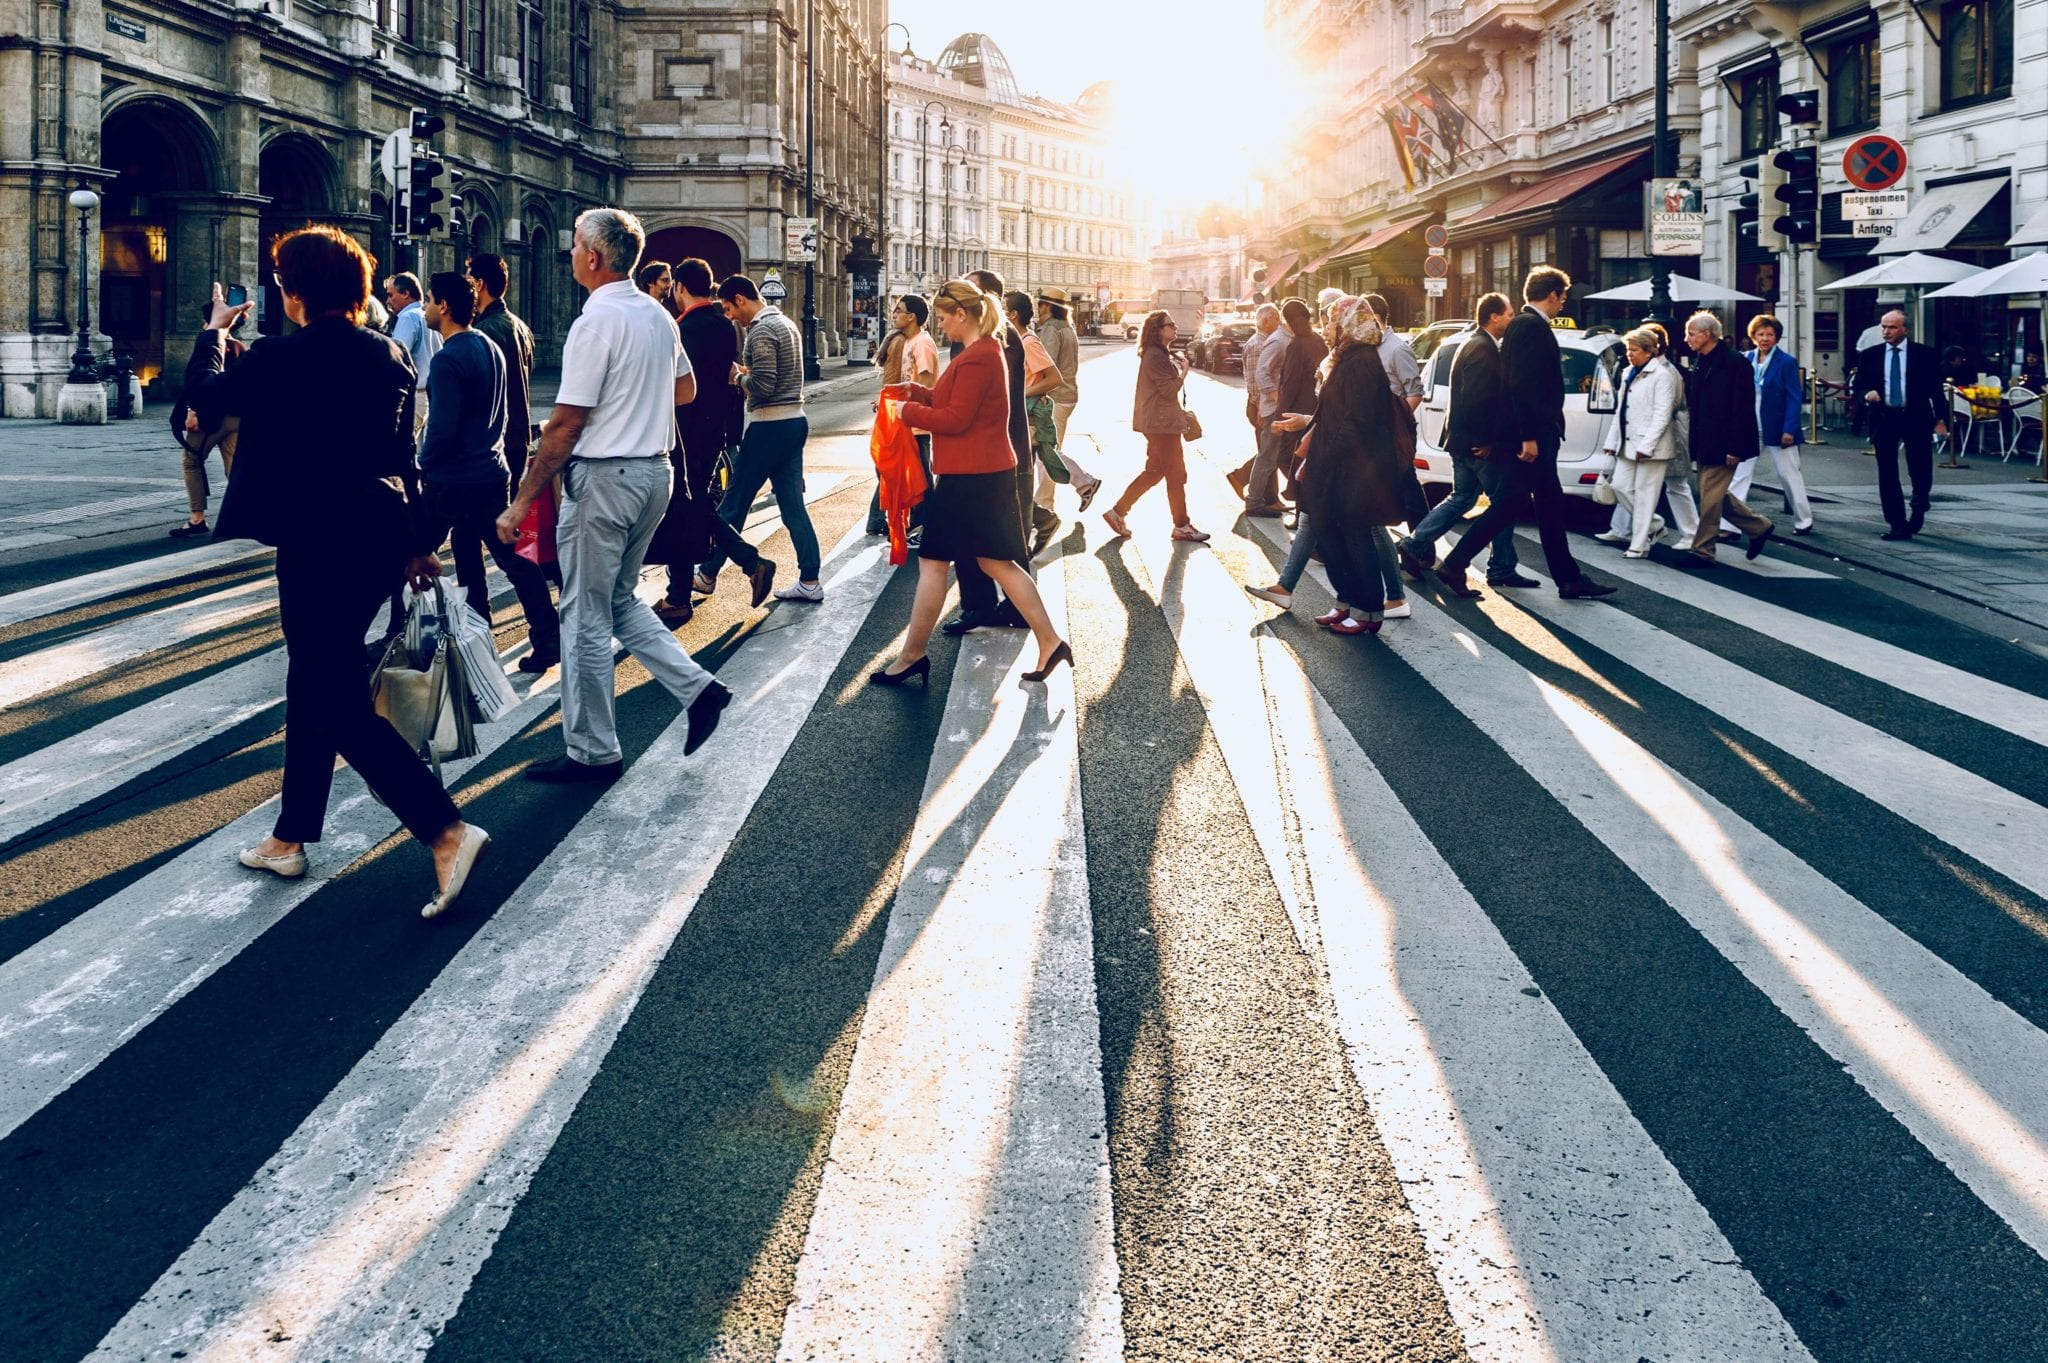 Lack of pedestrian infrastructure can result in accidents